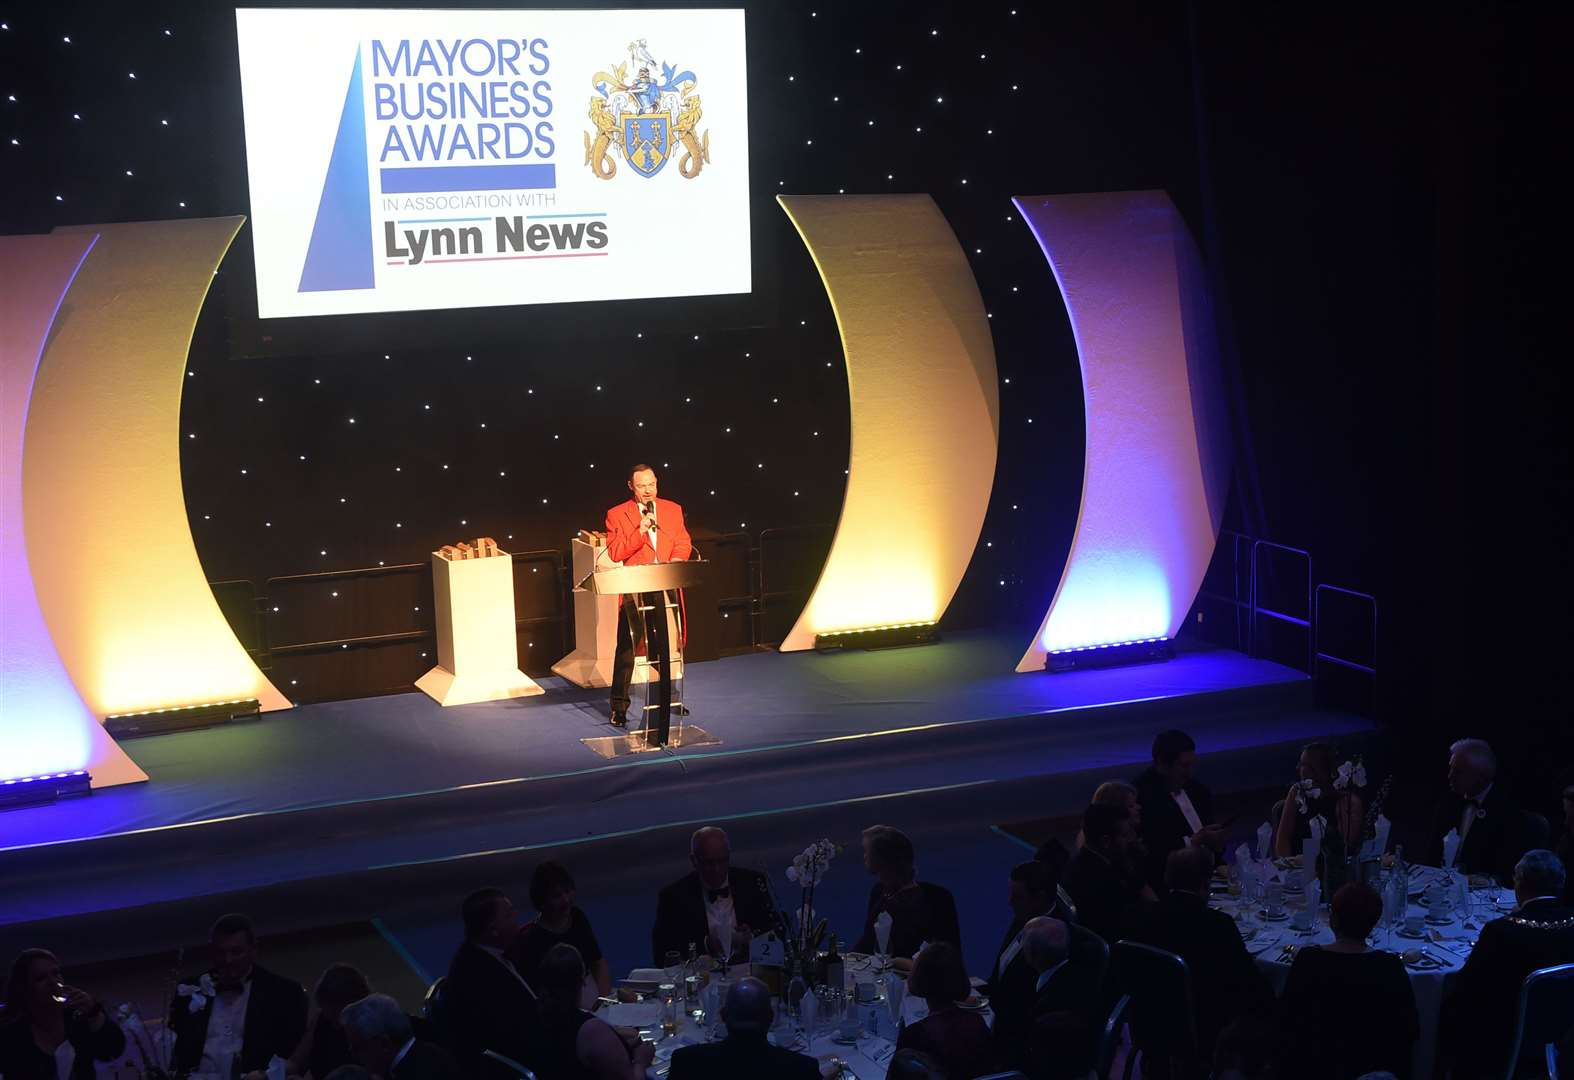 Don't delay: get your Mayor's Business Awards nominations in